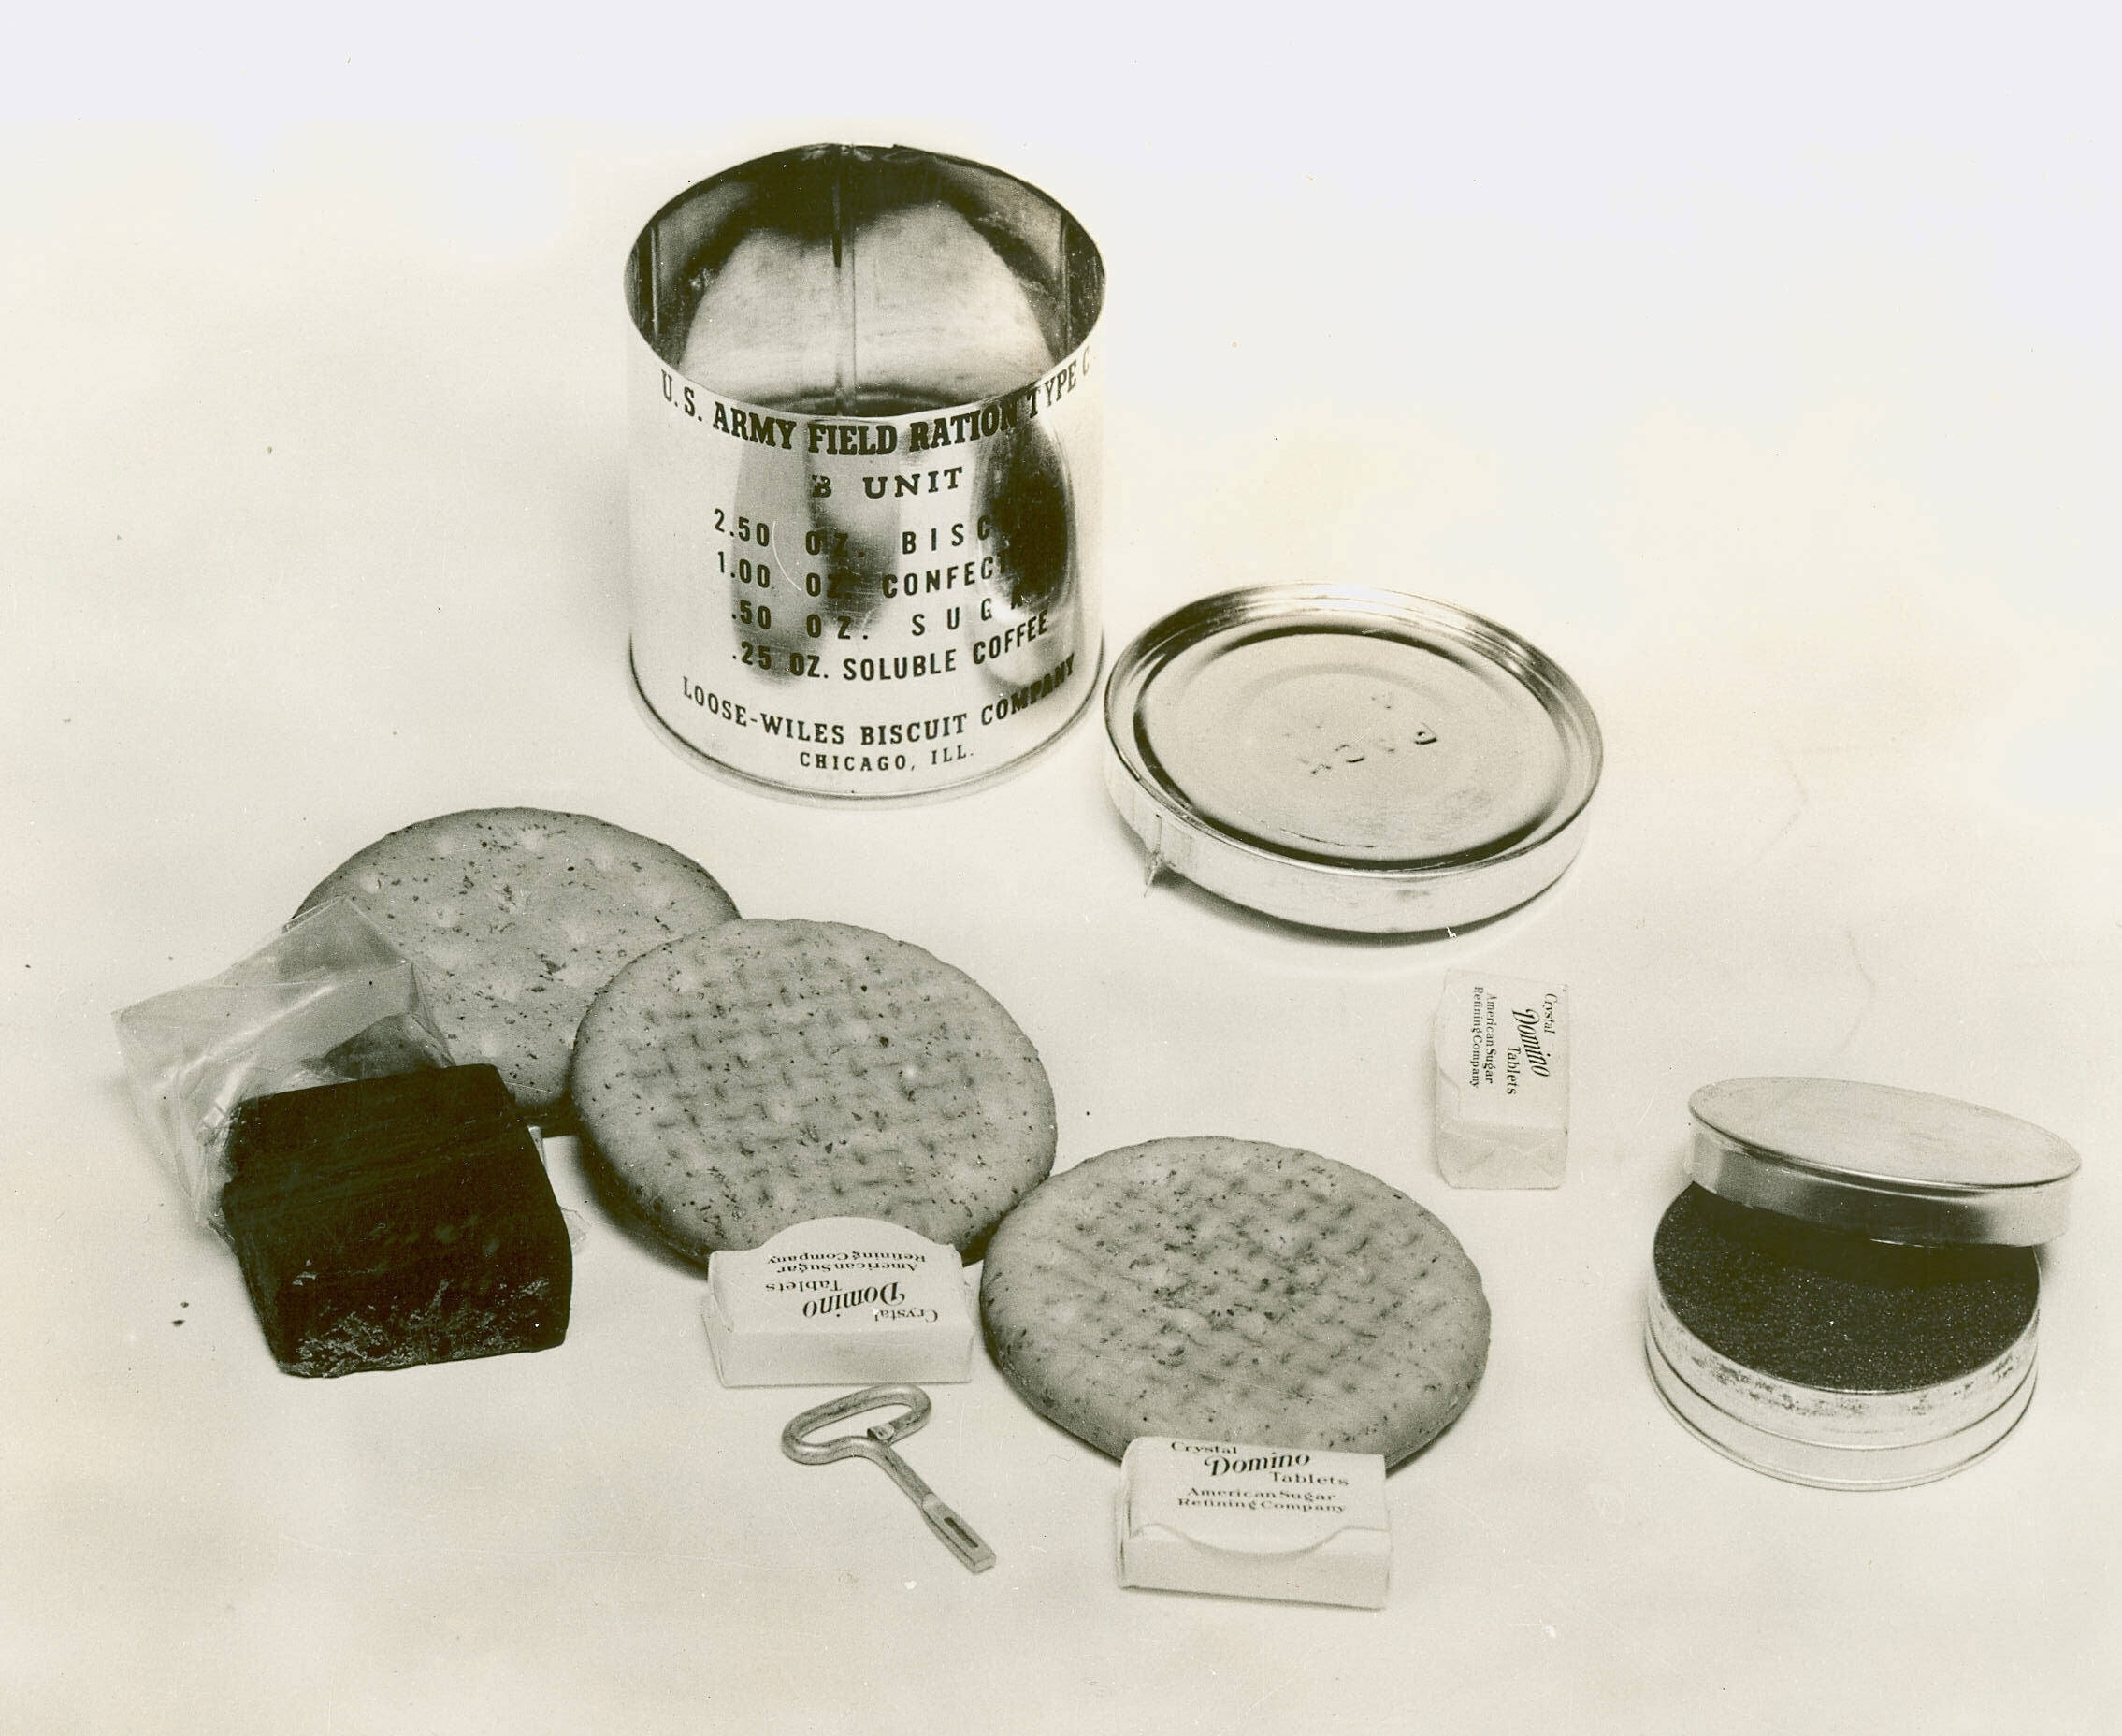 4 C_Ration_B_unit_(1941)_with_contents.jpg